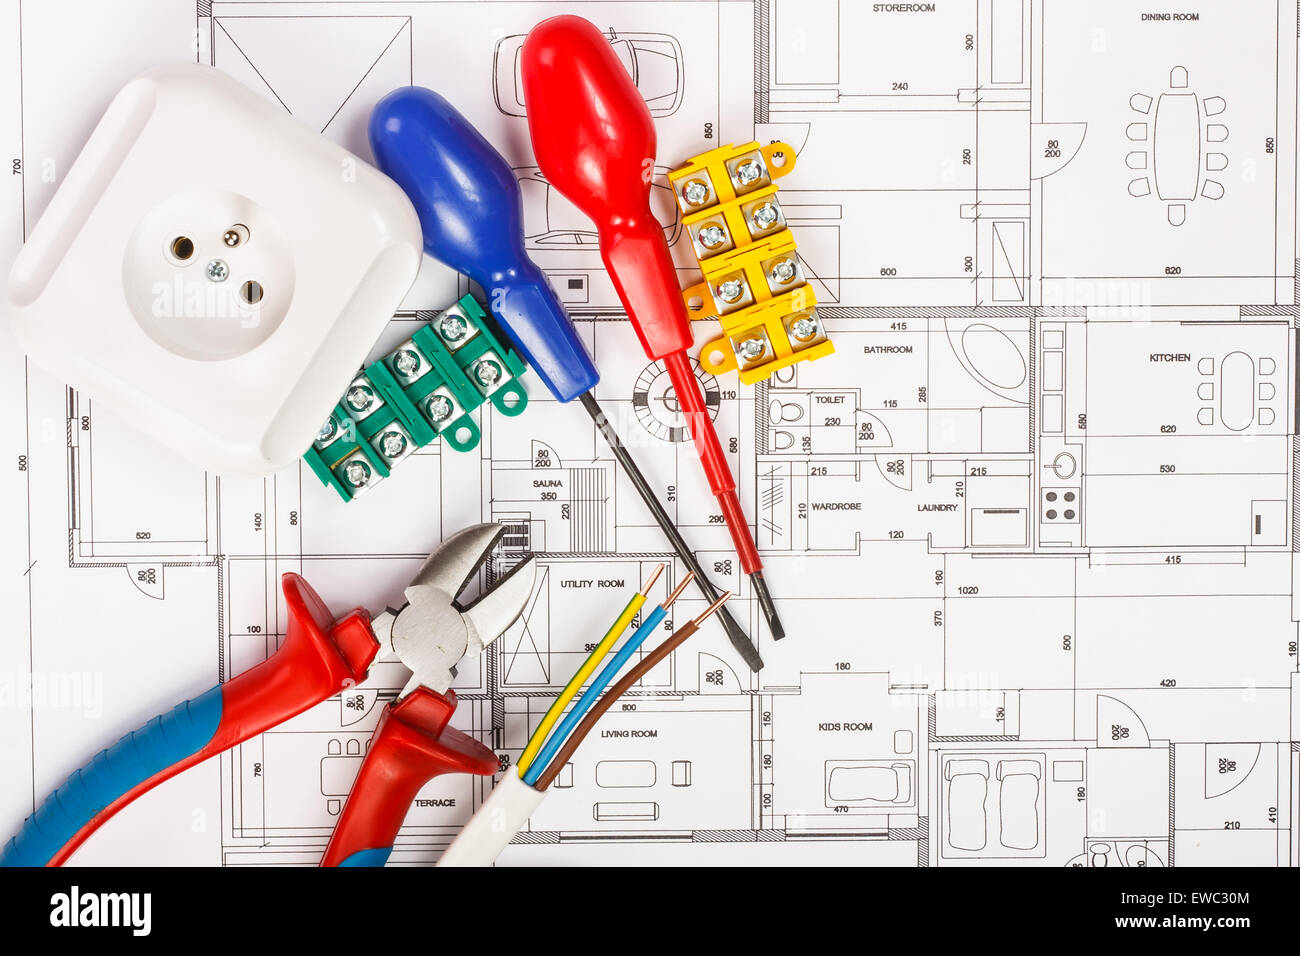 electrical equipment and tools on house plans stock photo